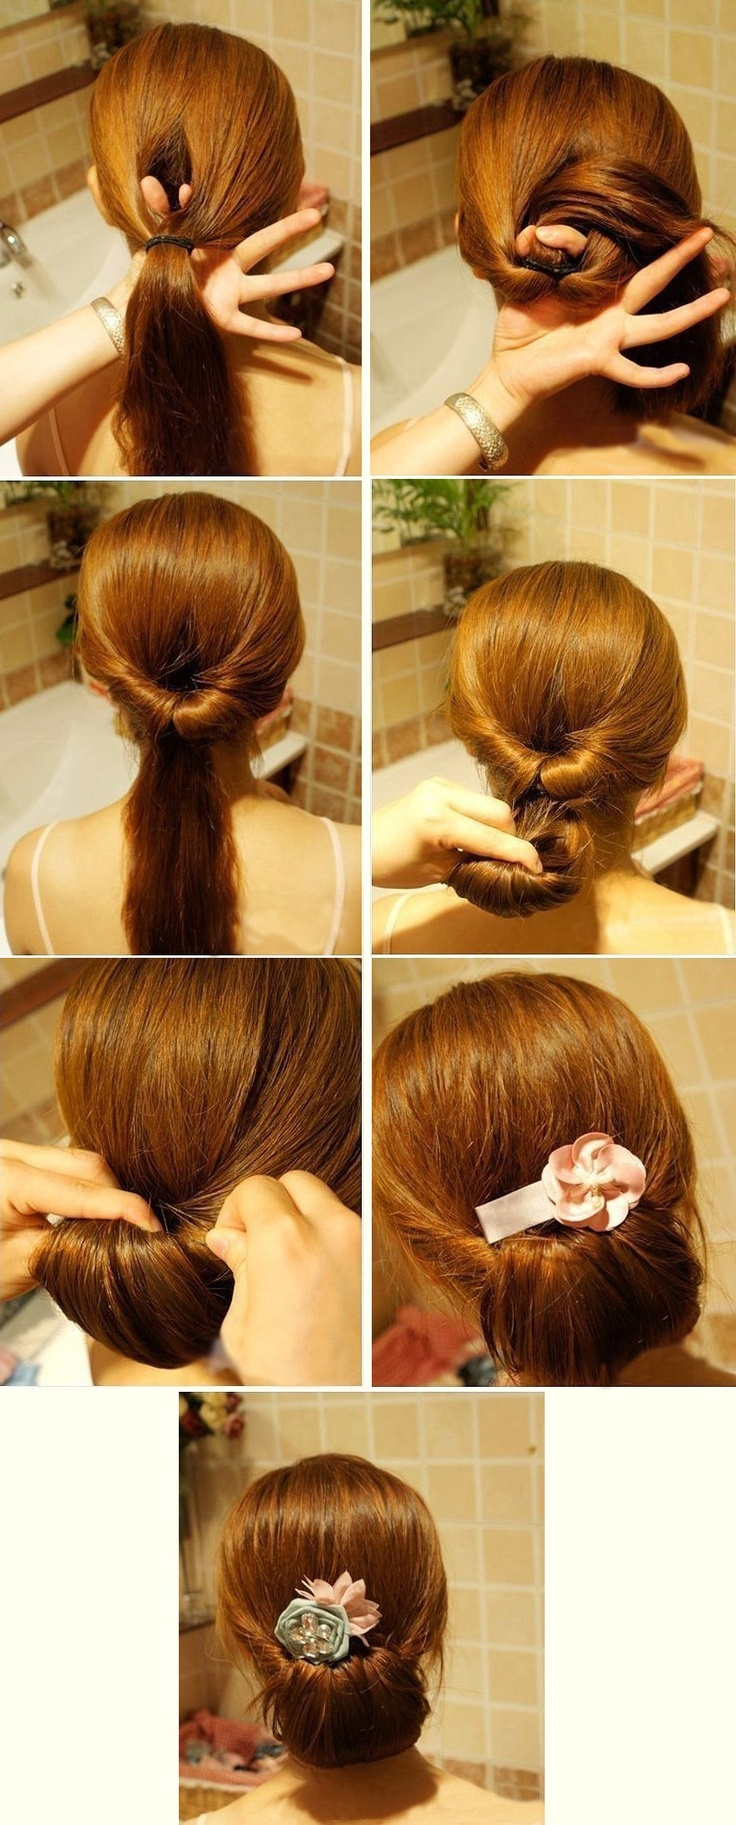 Os proponemos un moño sencillo para estar estupenda en cinco pasos y en cualquier ocasión | We propose you a simple bun to look gorgeous in just five minutes and for every ocassion.